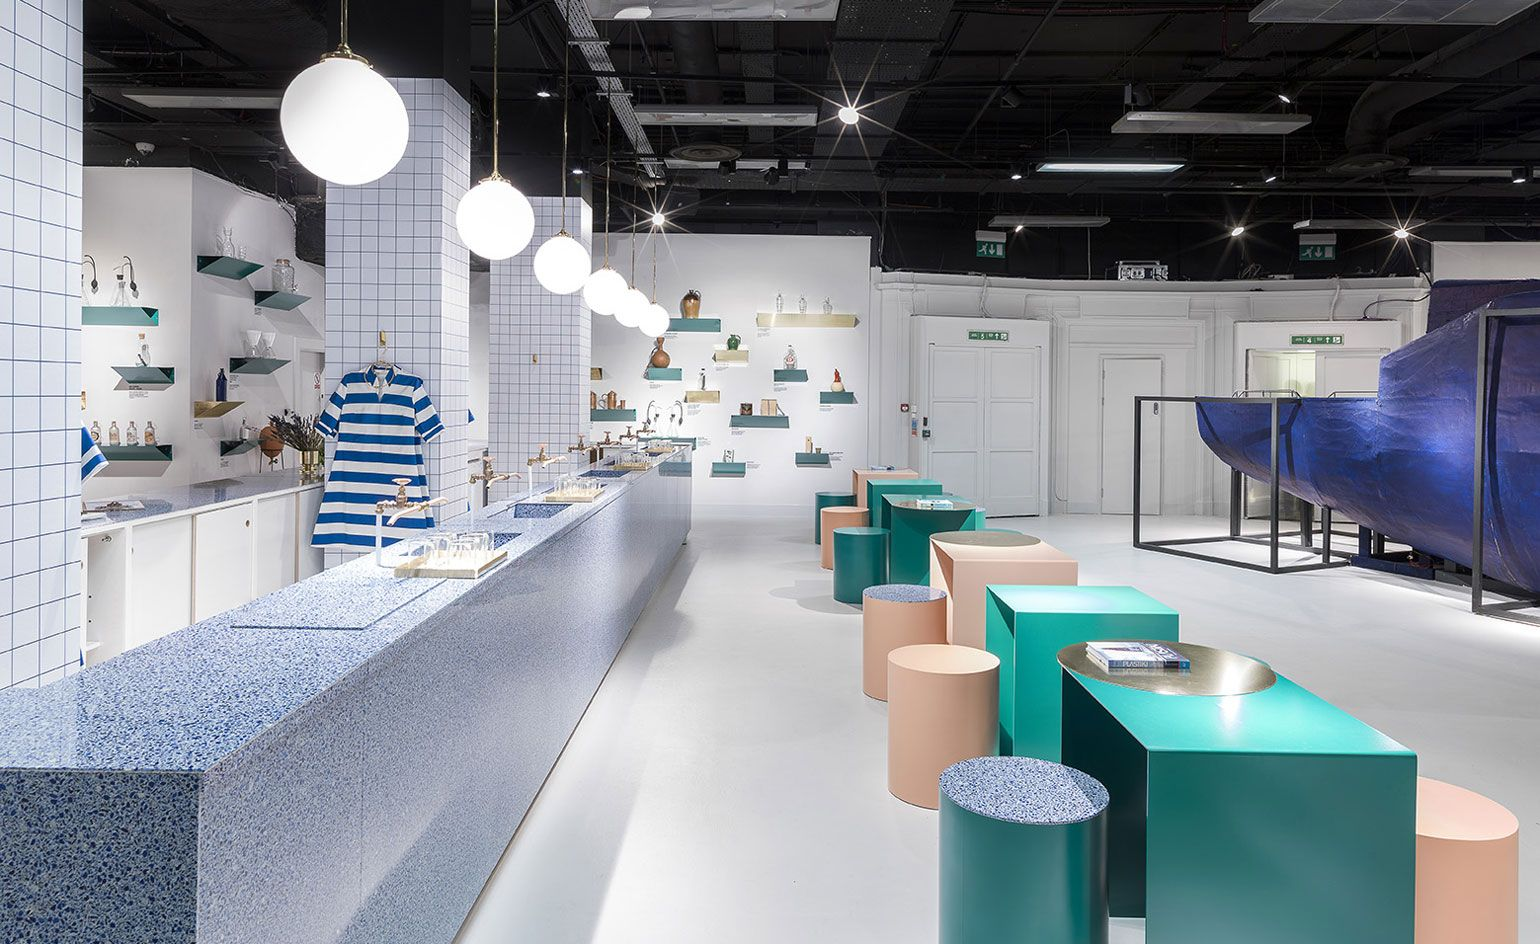 Explore Pop Up Bar Design Department And More